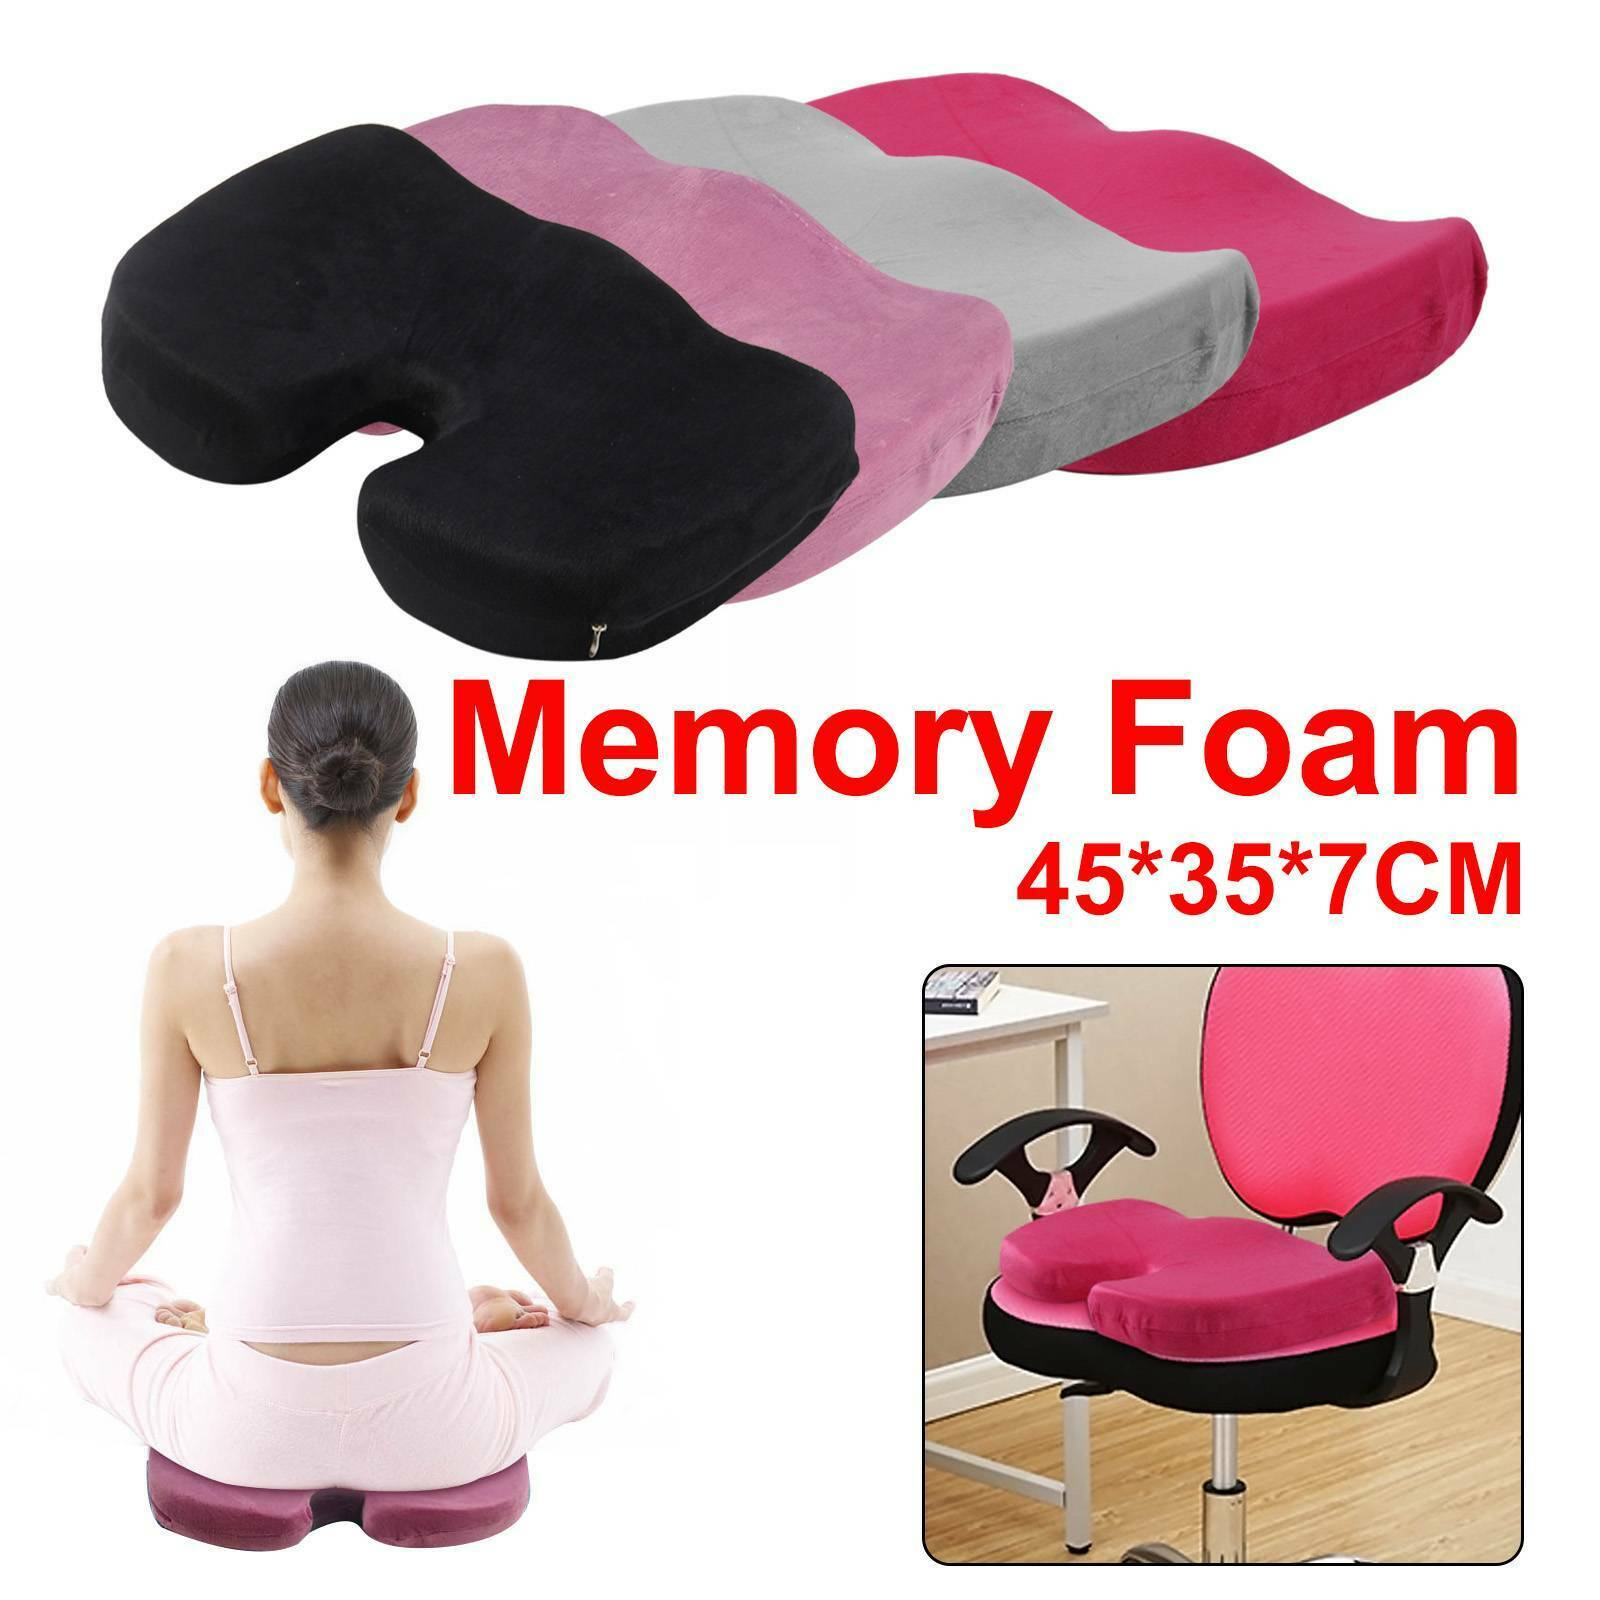 Memory Foam Seat Cushion Back Pain Relief Orthopedic Pillow Office Chair Coccyx 1 Of 11free Shipping See More